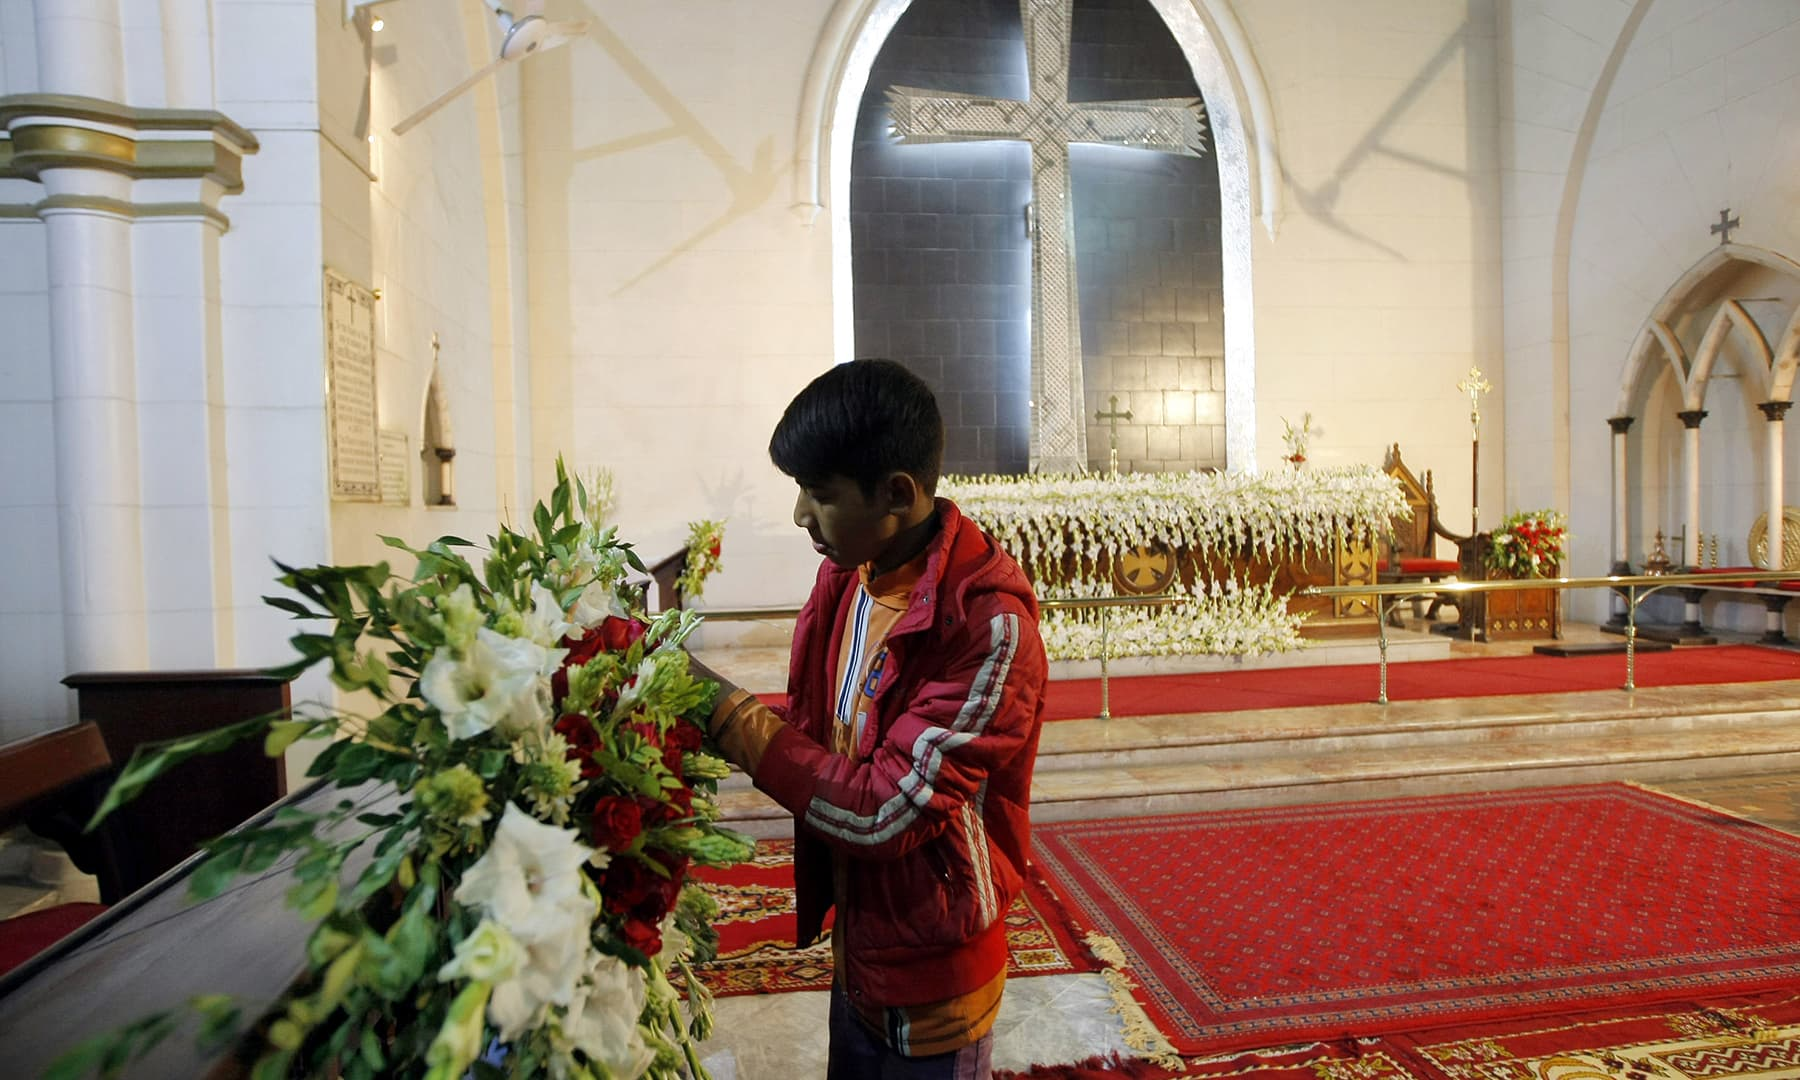 On Christmas eve, a young boy arranges the flower decorations at the Saint John's Church in Peshawar | White Star